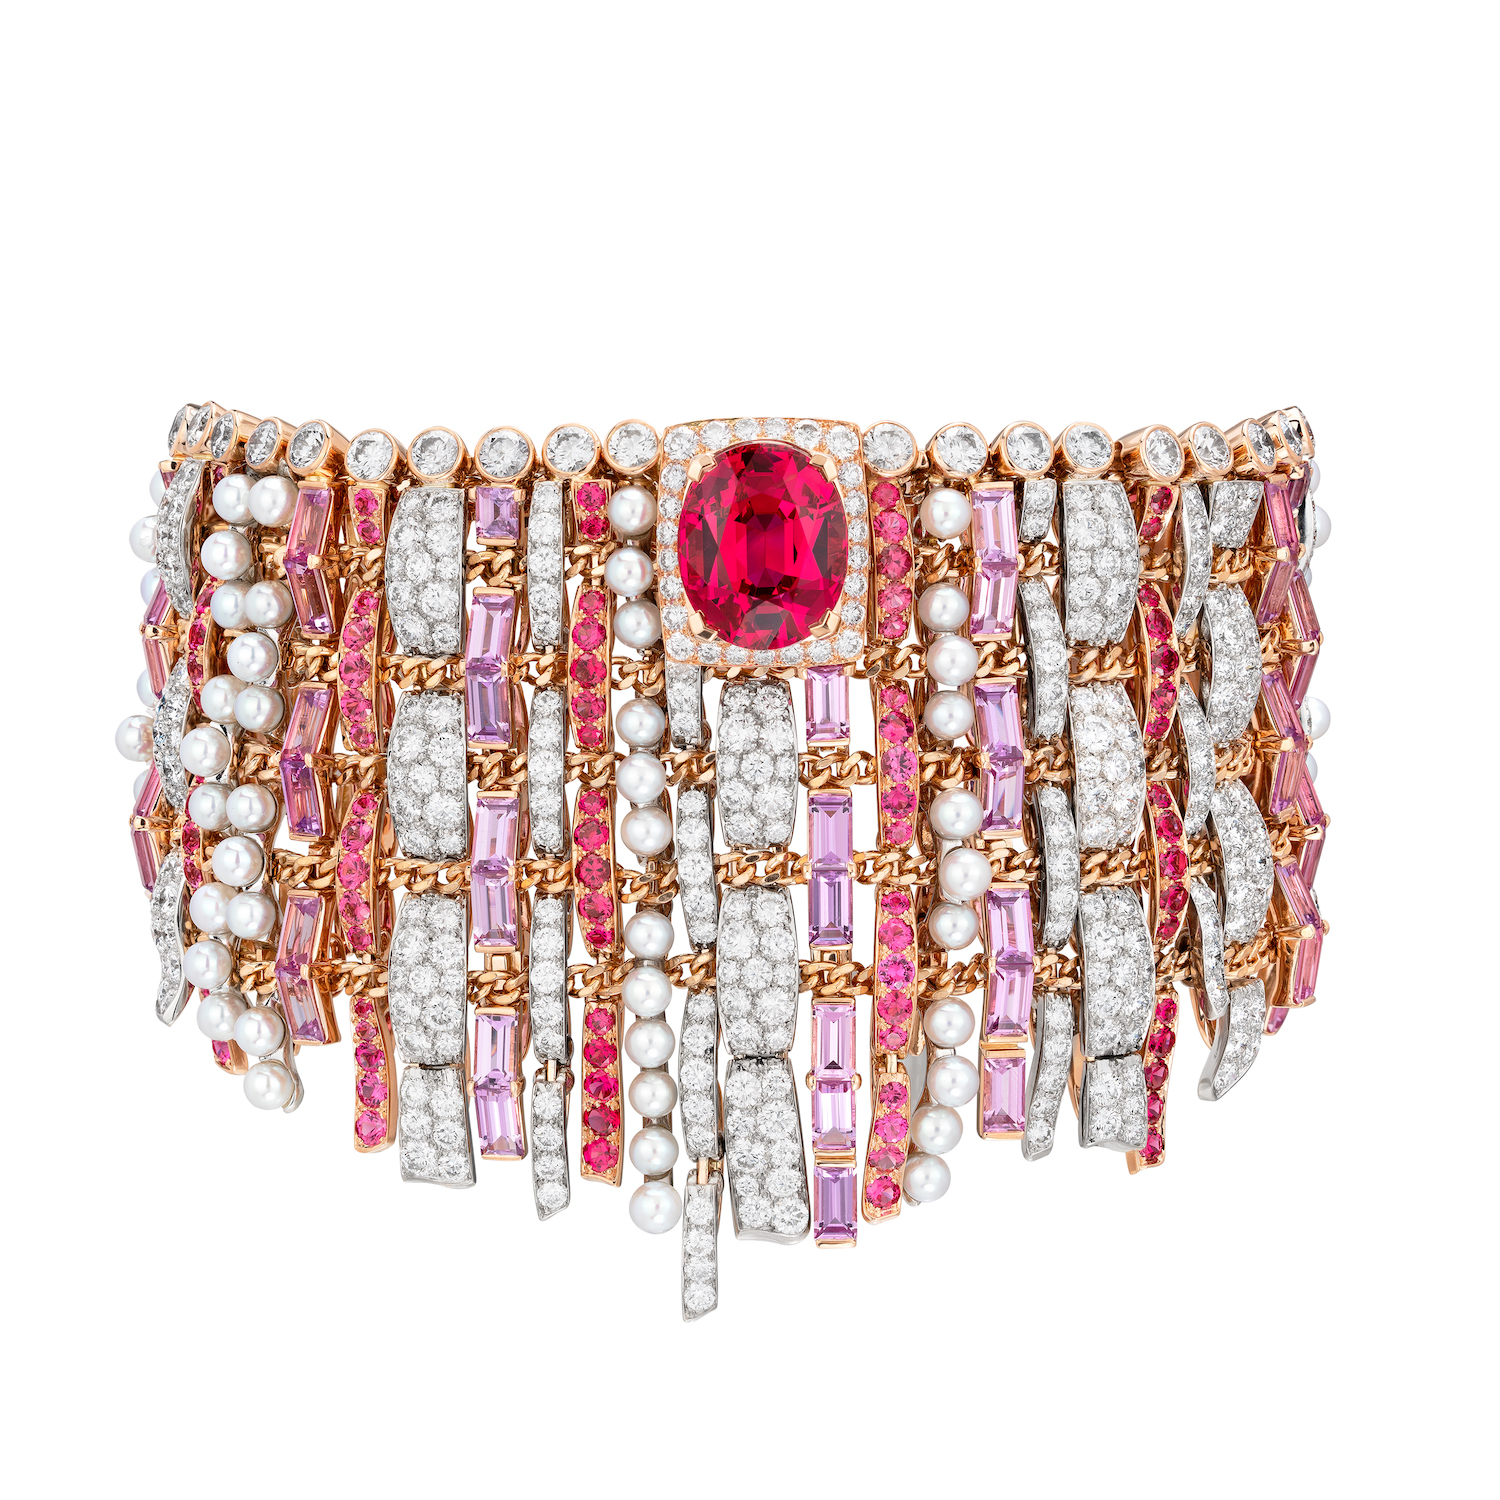 Tweed Couture Bracelet (Photo credit: Chanel)